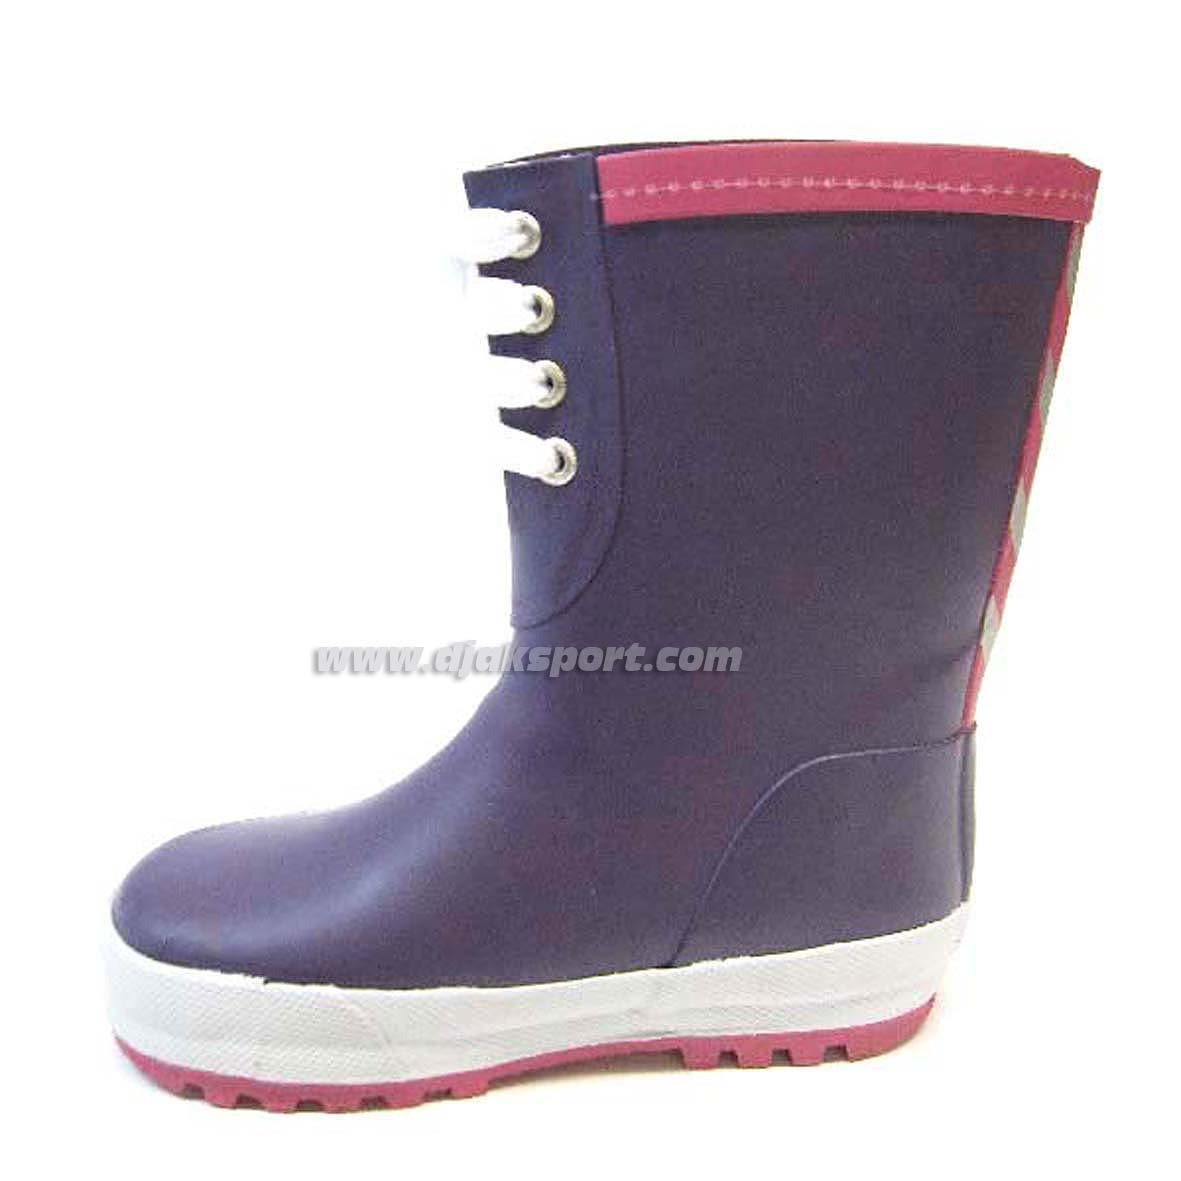 -  KIDS RUBBER BOOTS 63007-3287